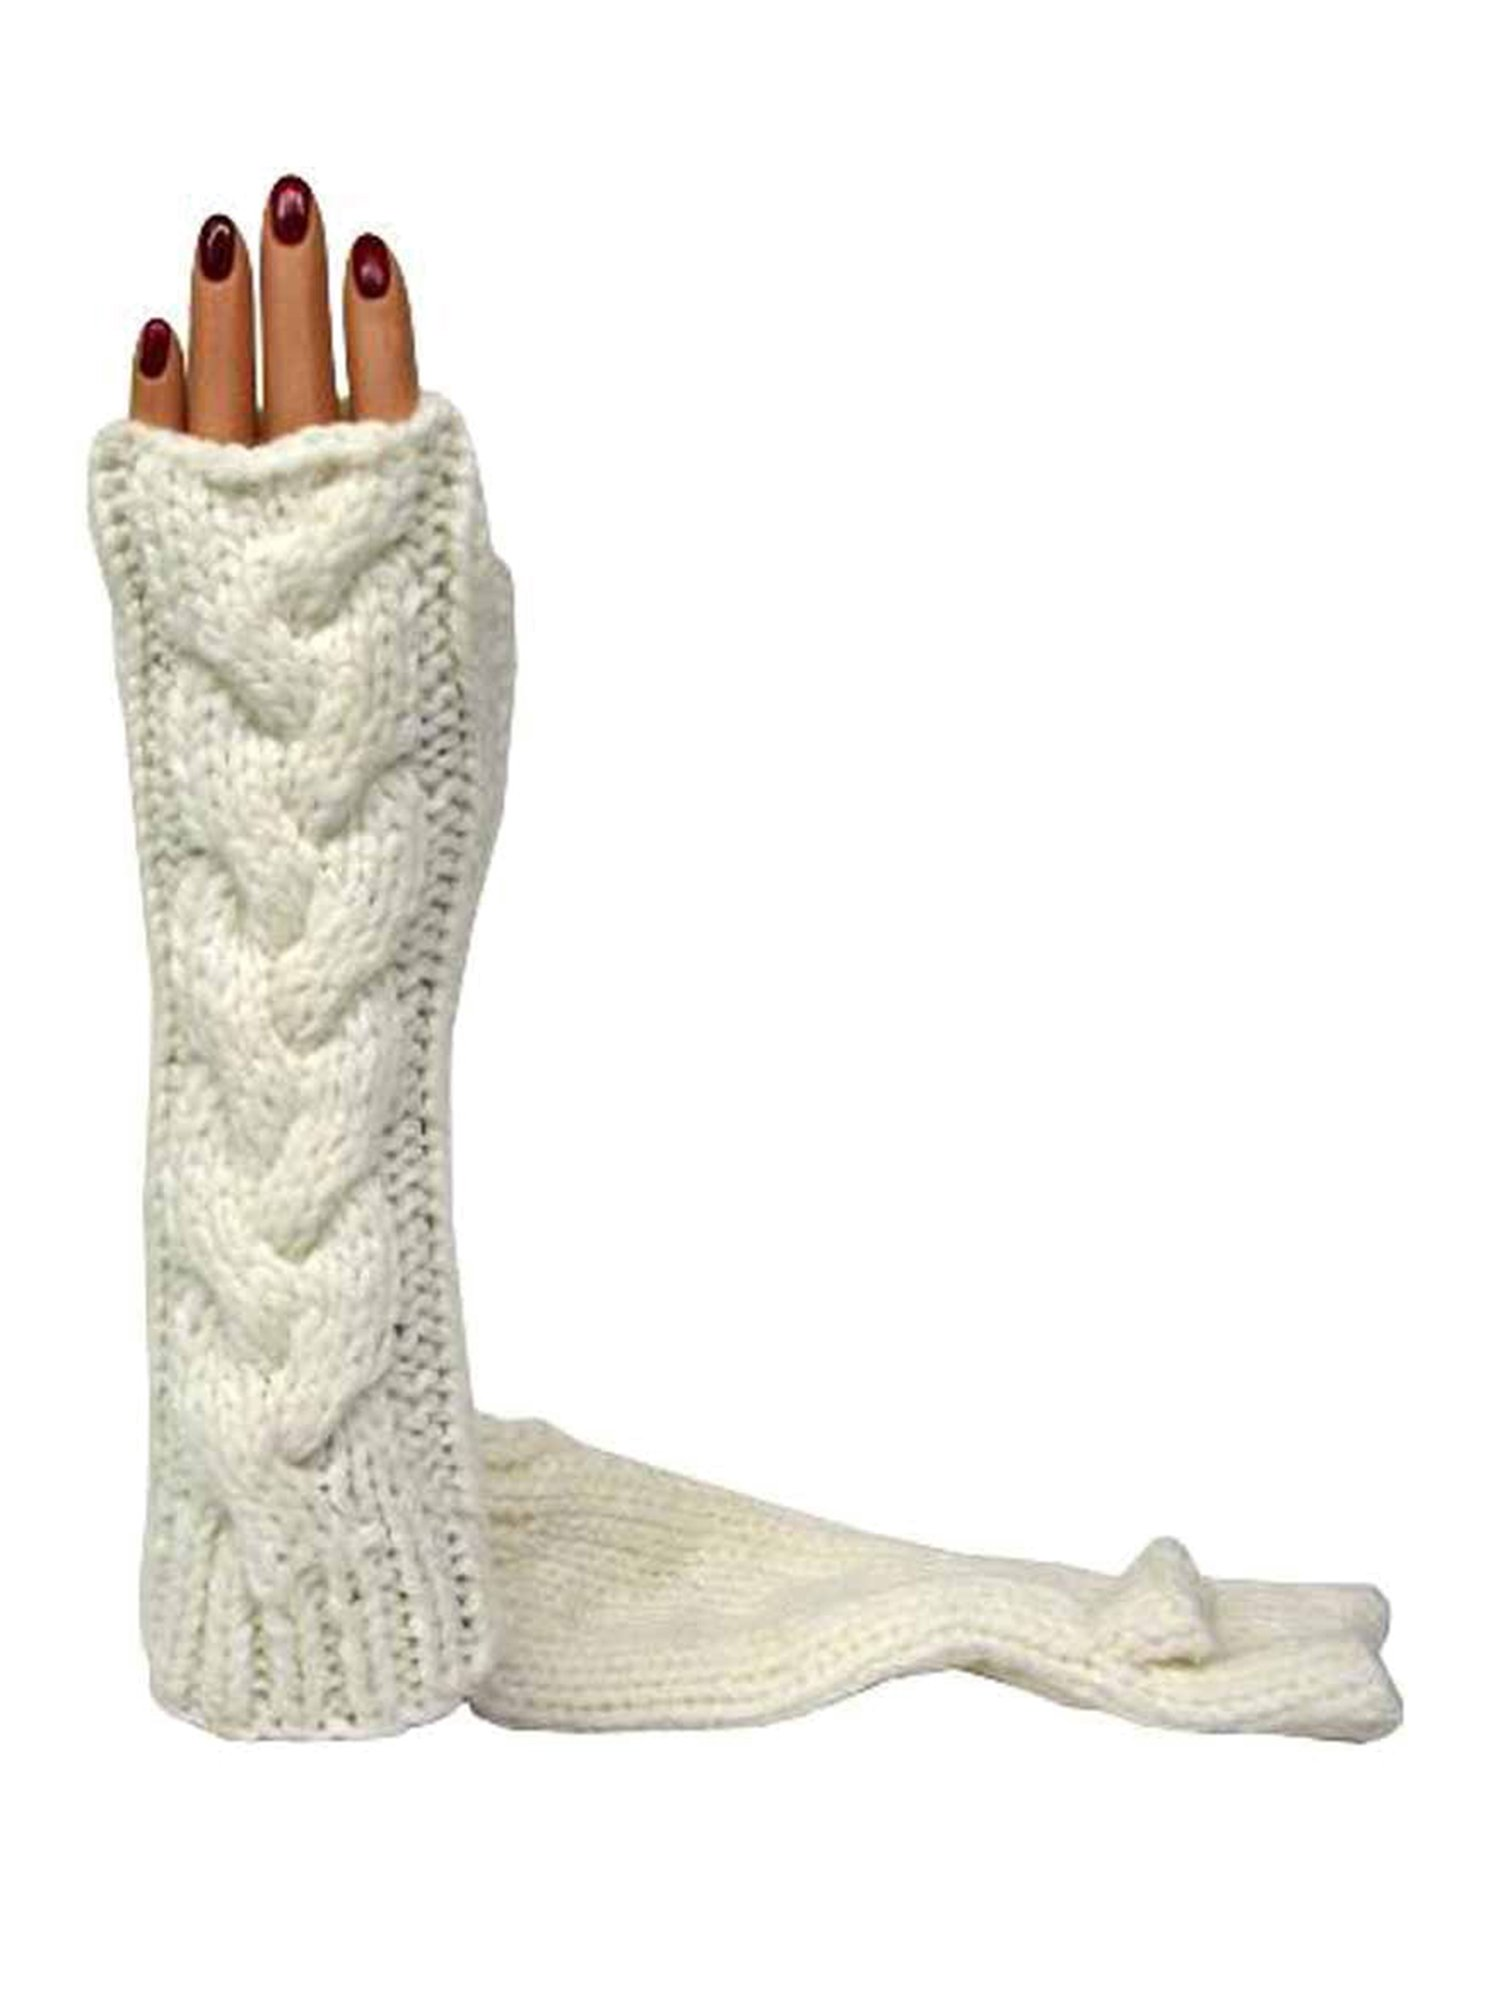 Ivory Long Thick Cable Knit Arm Warmer Gloves by Luxury Divas (Image #2)